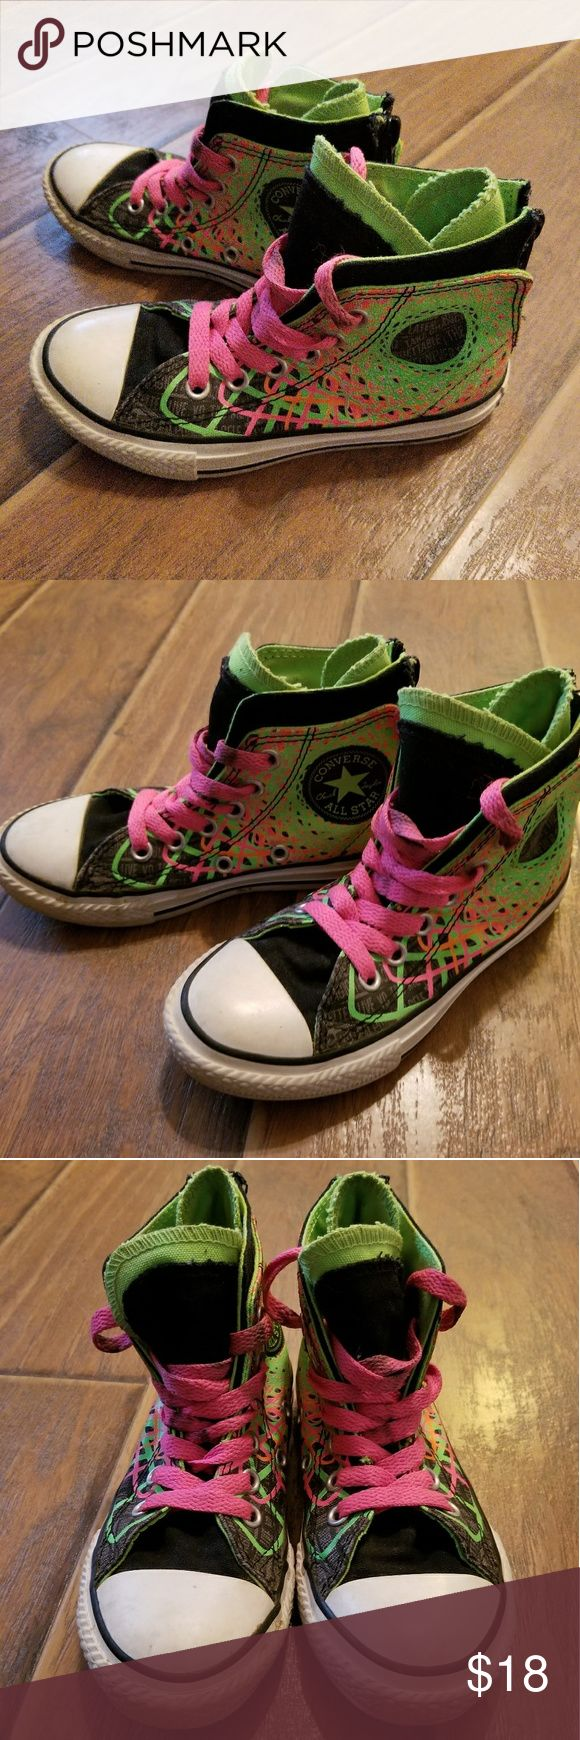 Size 11 unisex Converse Neon GUC size 11 unisex Converse Neon high tops. Back zip and laces. Clean footbeds. Could use some new laces due to a few dingy areas. Converse Shoes